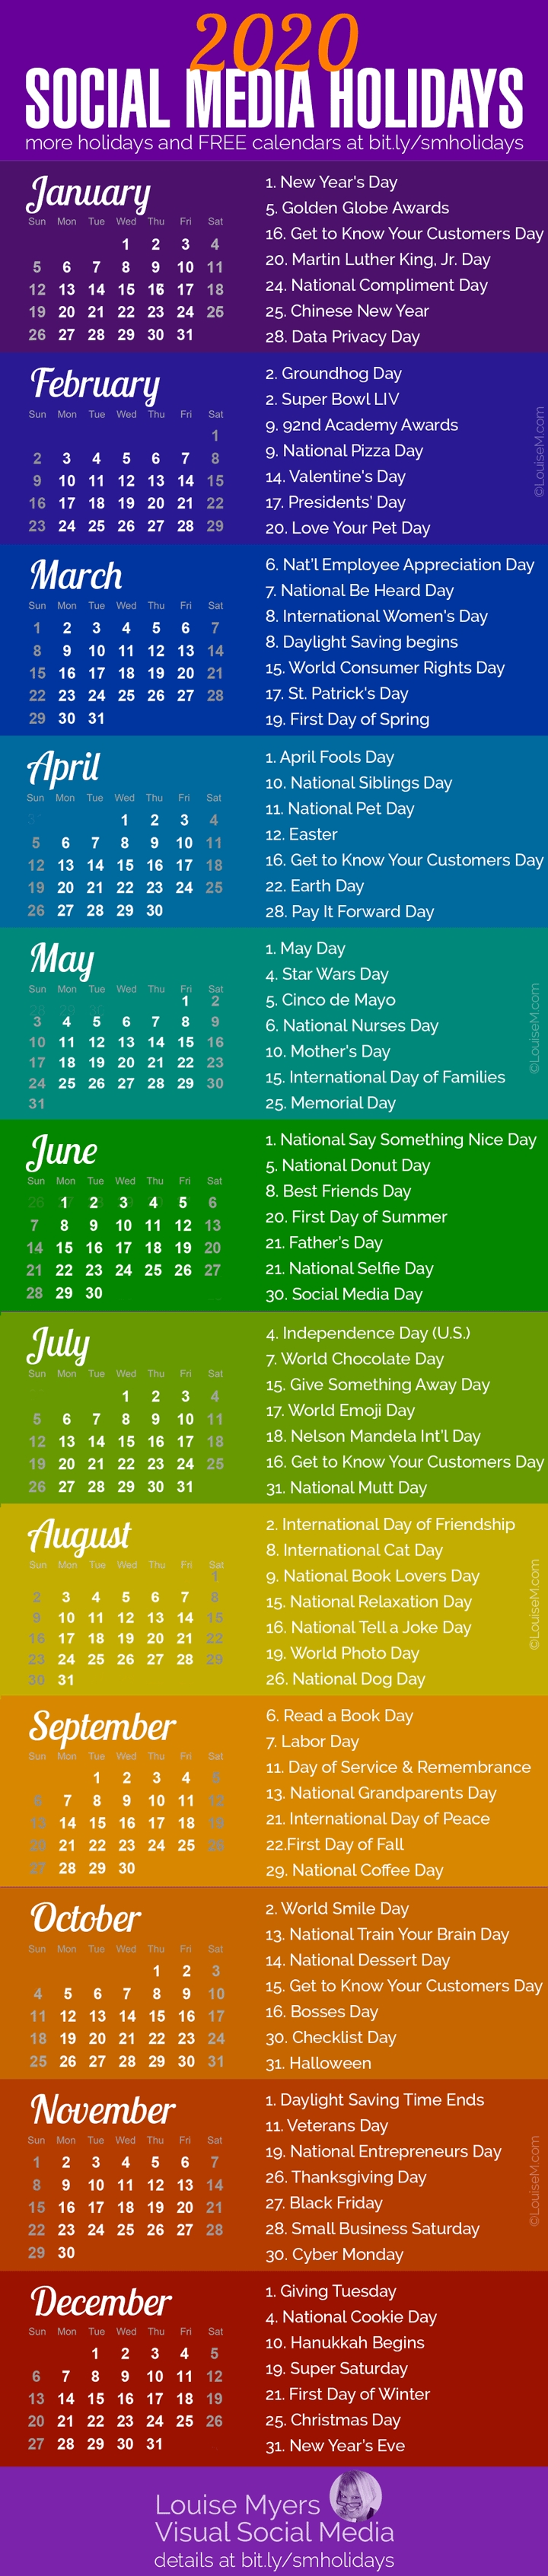 84 Social Media Holidays You Need In 2020: Indispensable! throughout Special Days In Ht E Year 2020